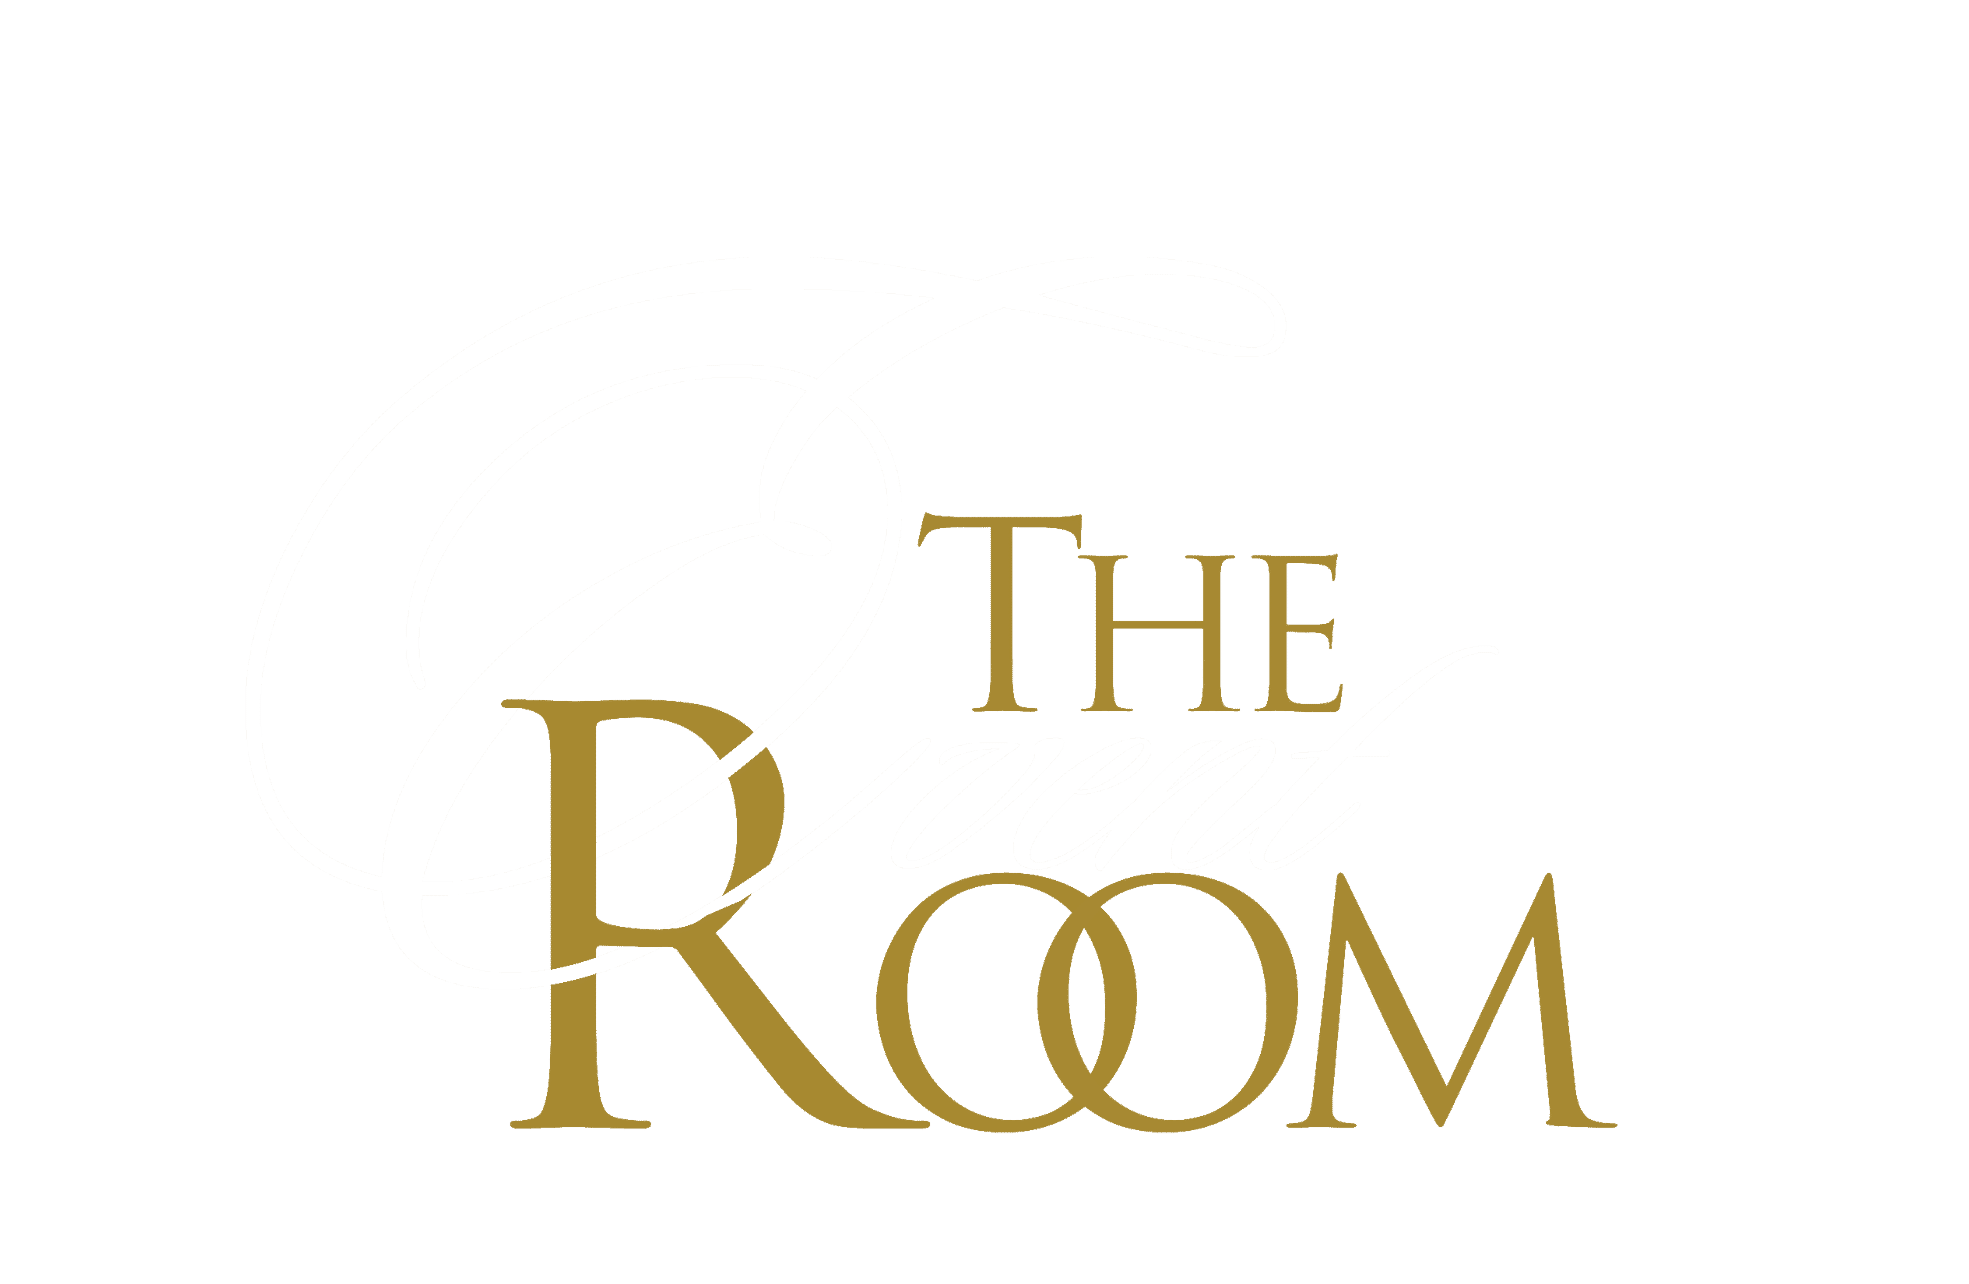 the-event-room-logo-naked-header